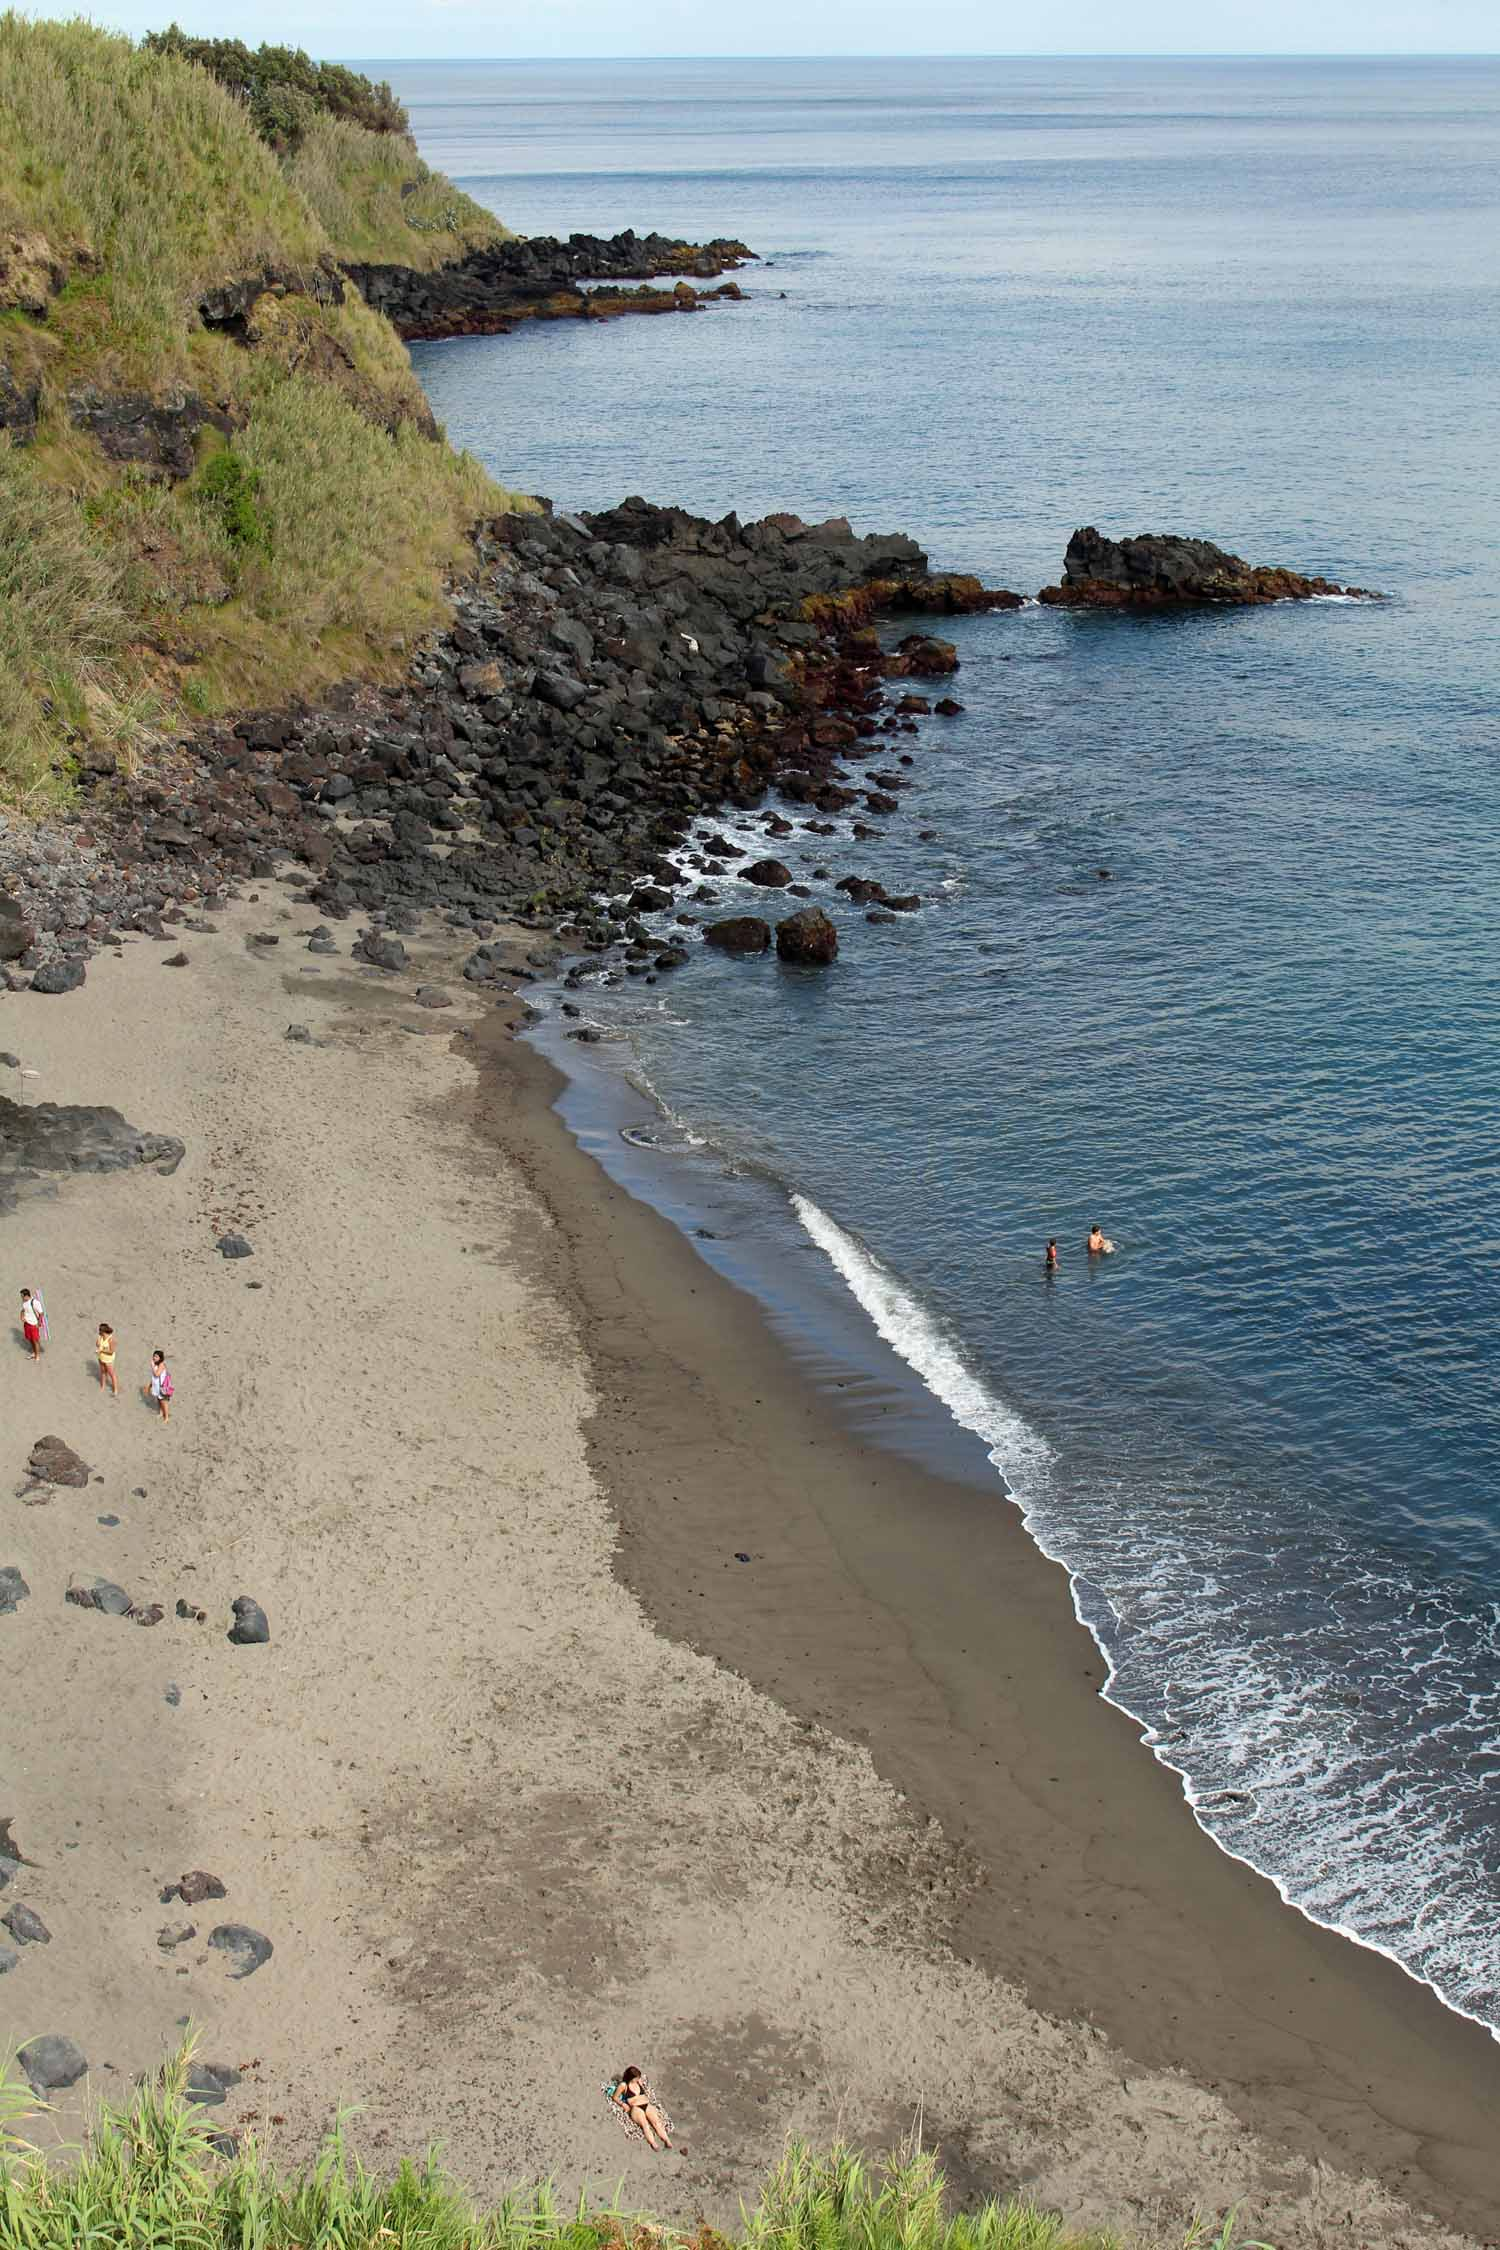 The beach of Ribeira das Tainhas in São Miguel island, Azores